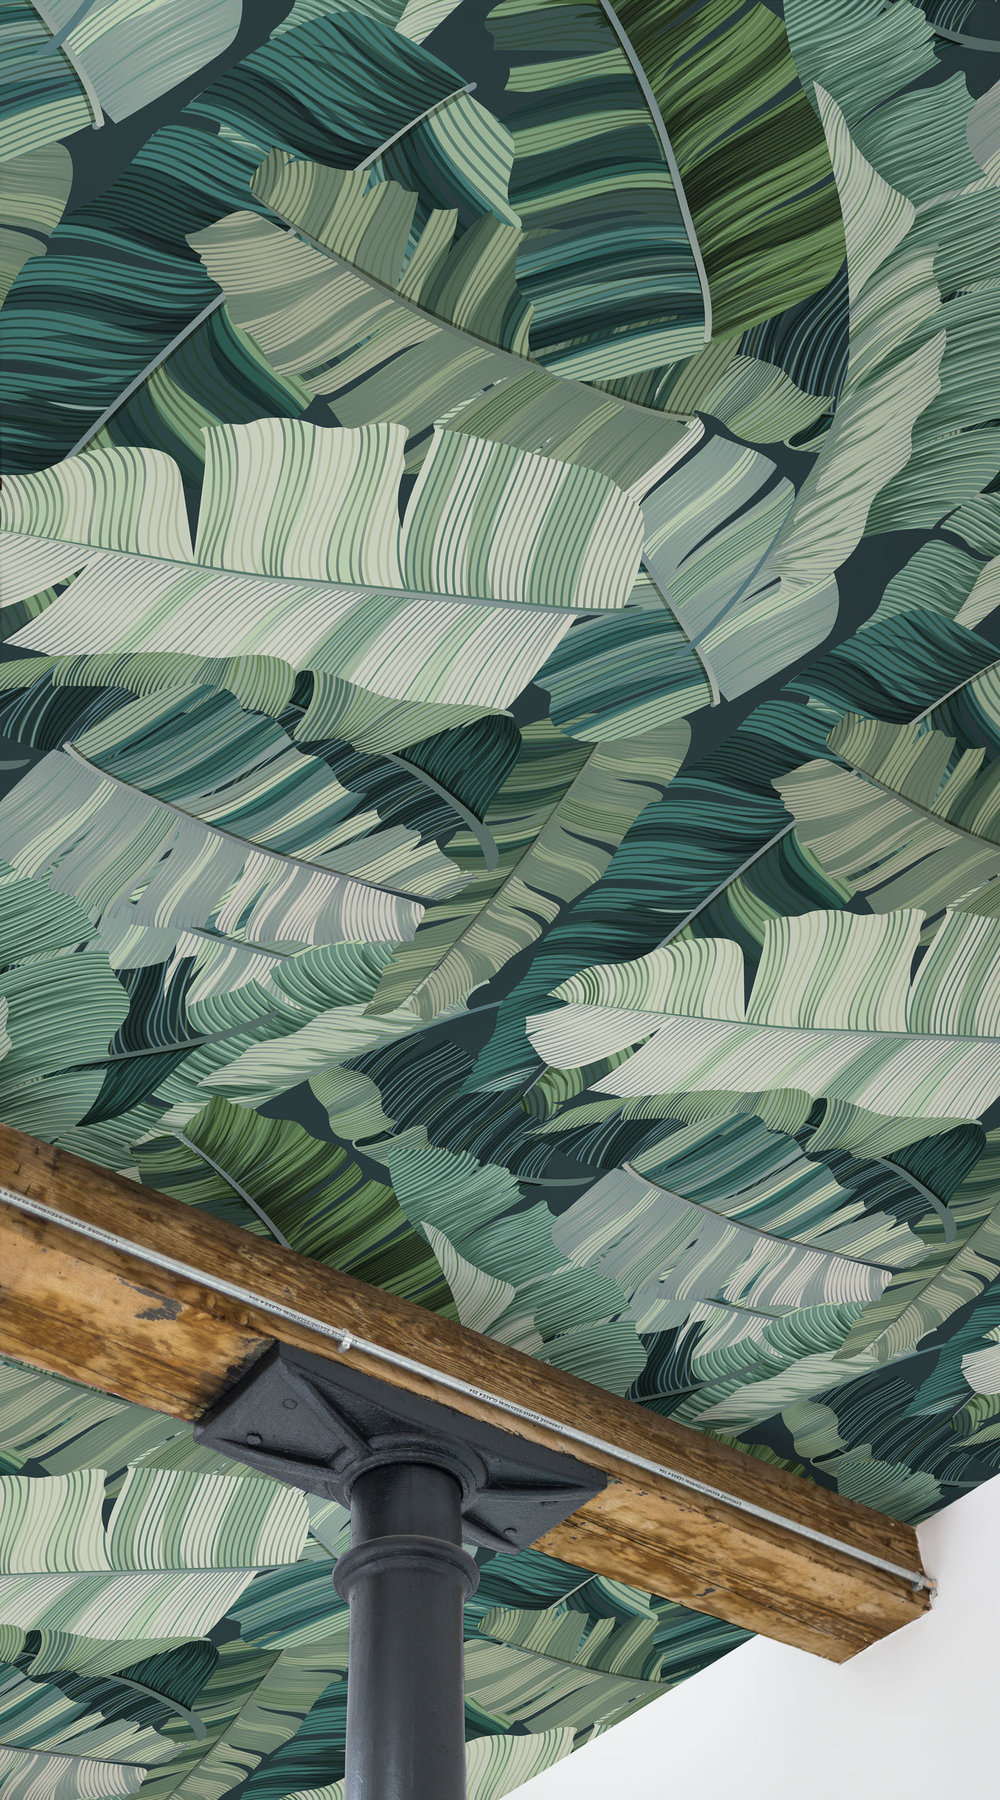 3d-Mixed-Tropical-Camo-Leaves-Ceiling-Lifestyle-WEBBLOG copy 2.jpg